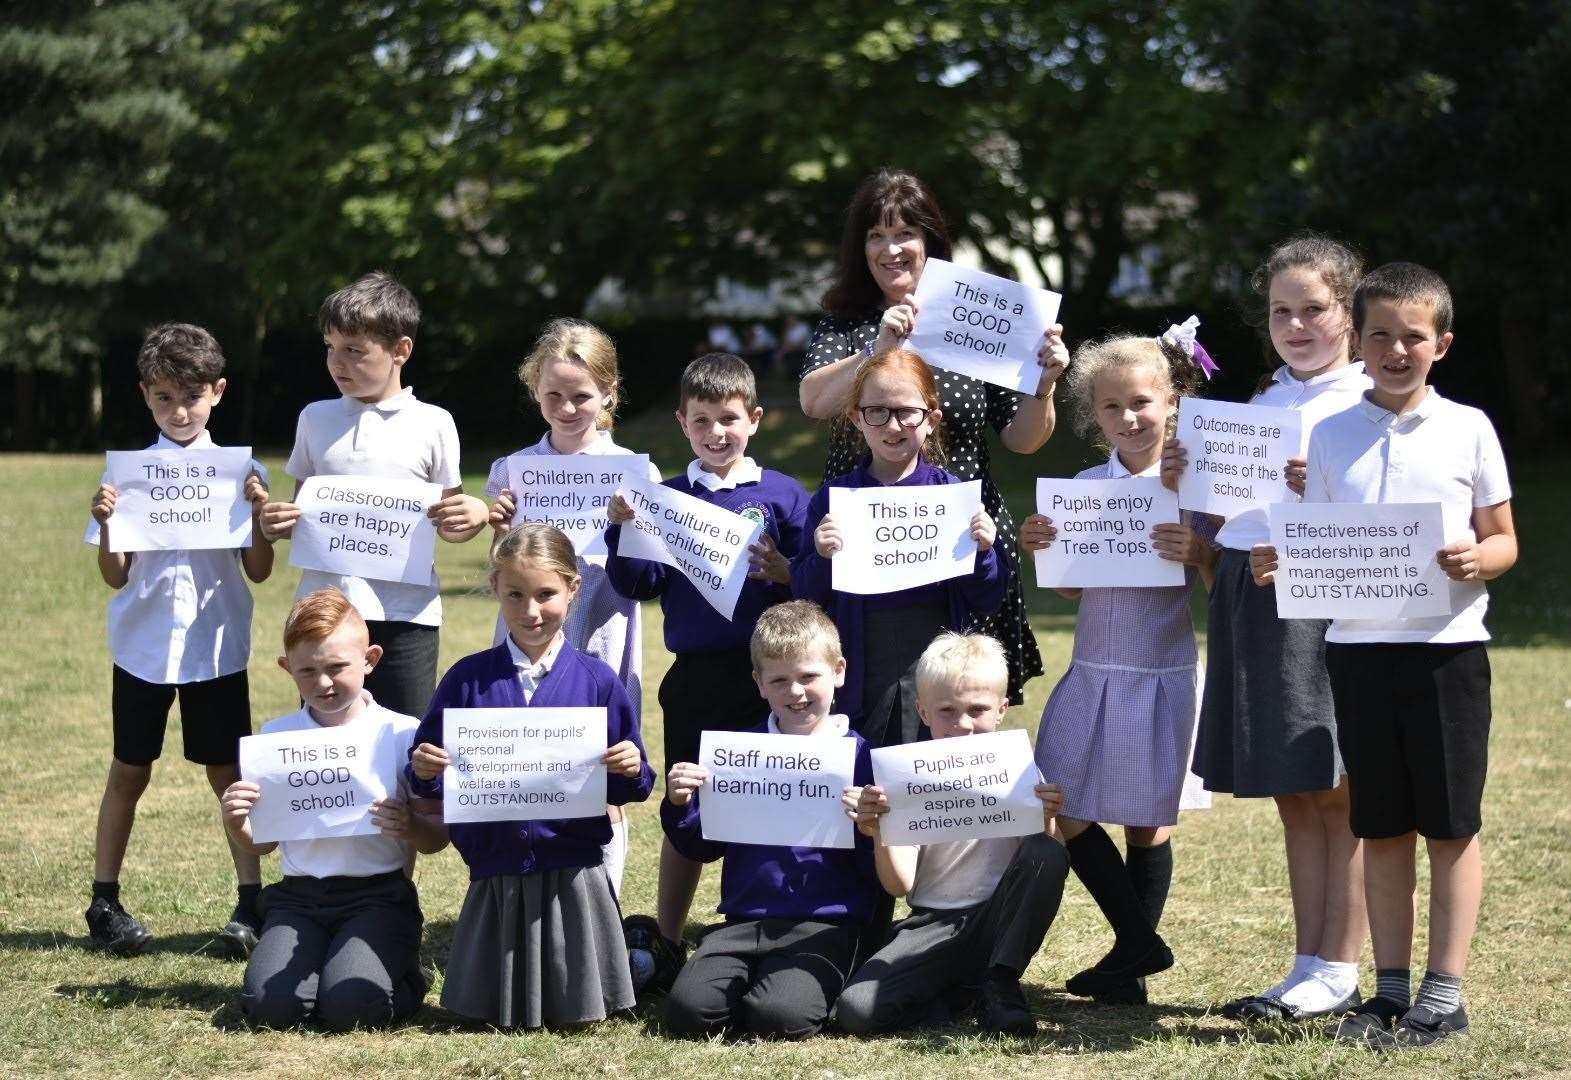 School's flash mob video to celebrate Good Ofsted